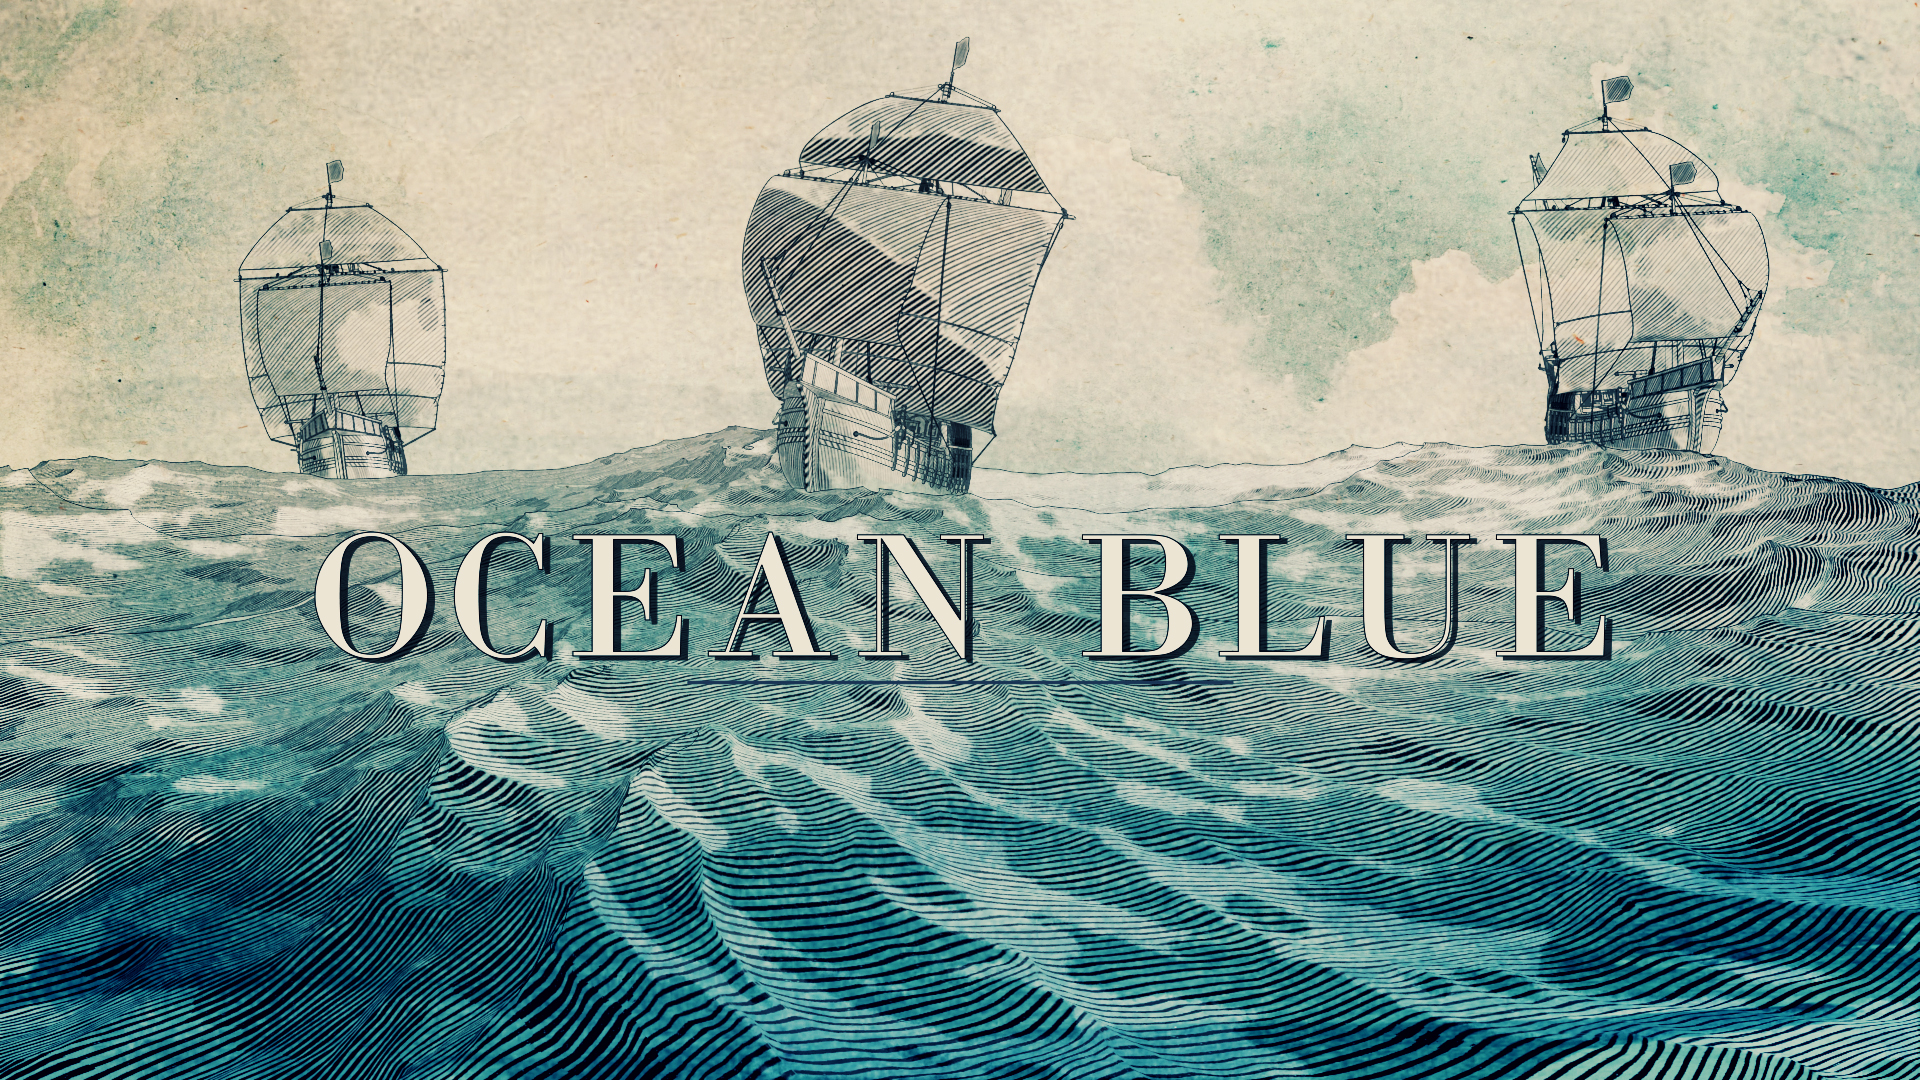 OCEAN_BLUE_BOARDS_AV_03.04.2015_REV_00008